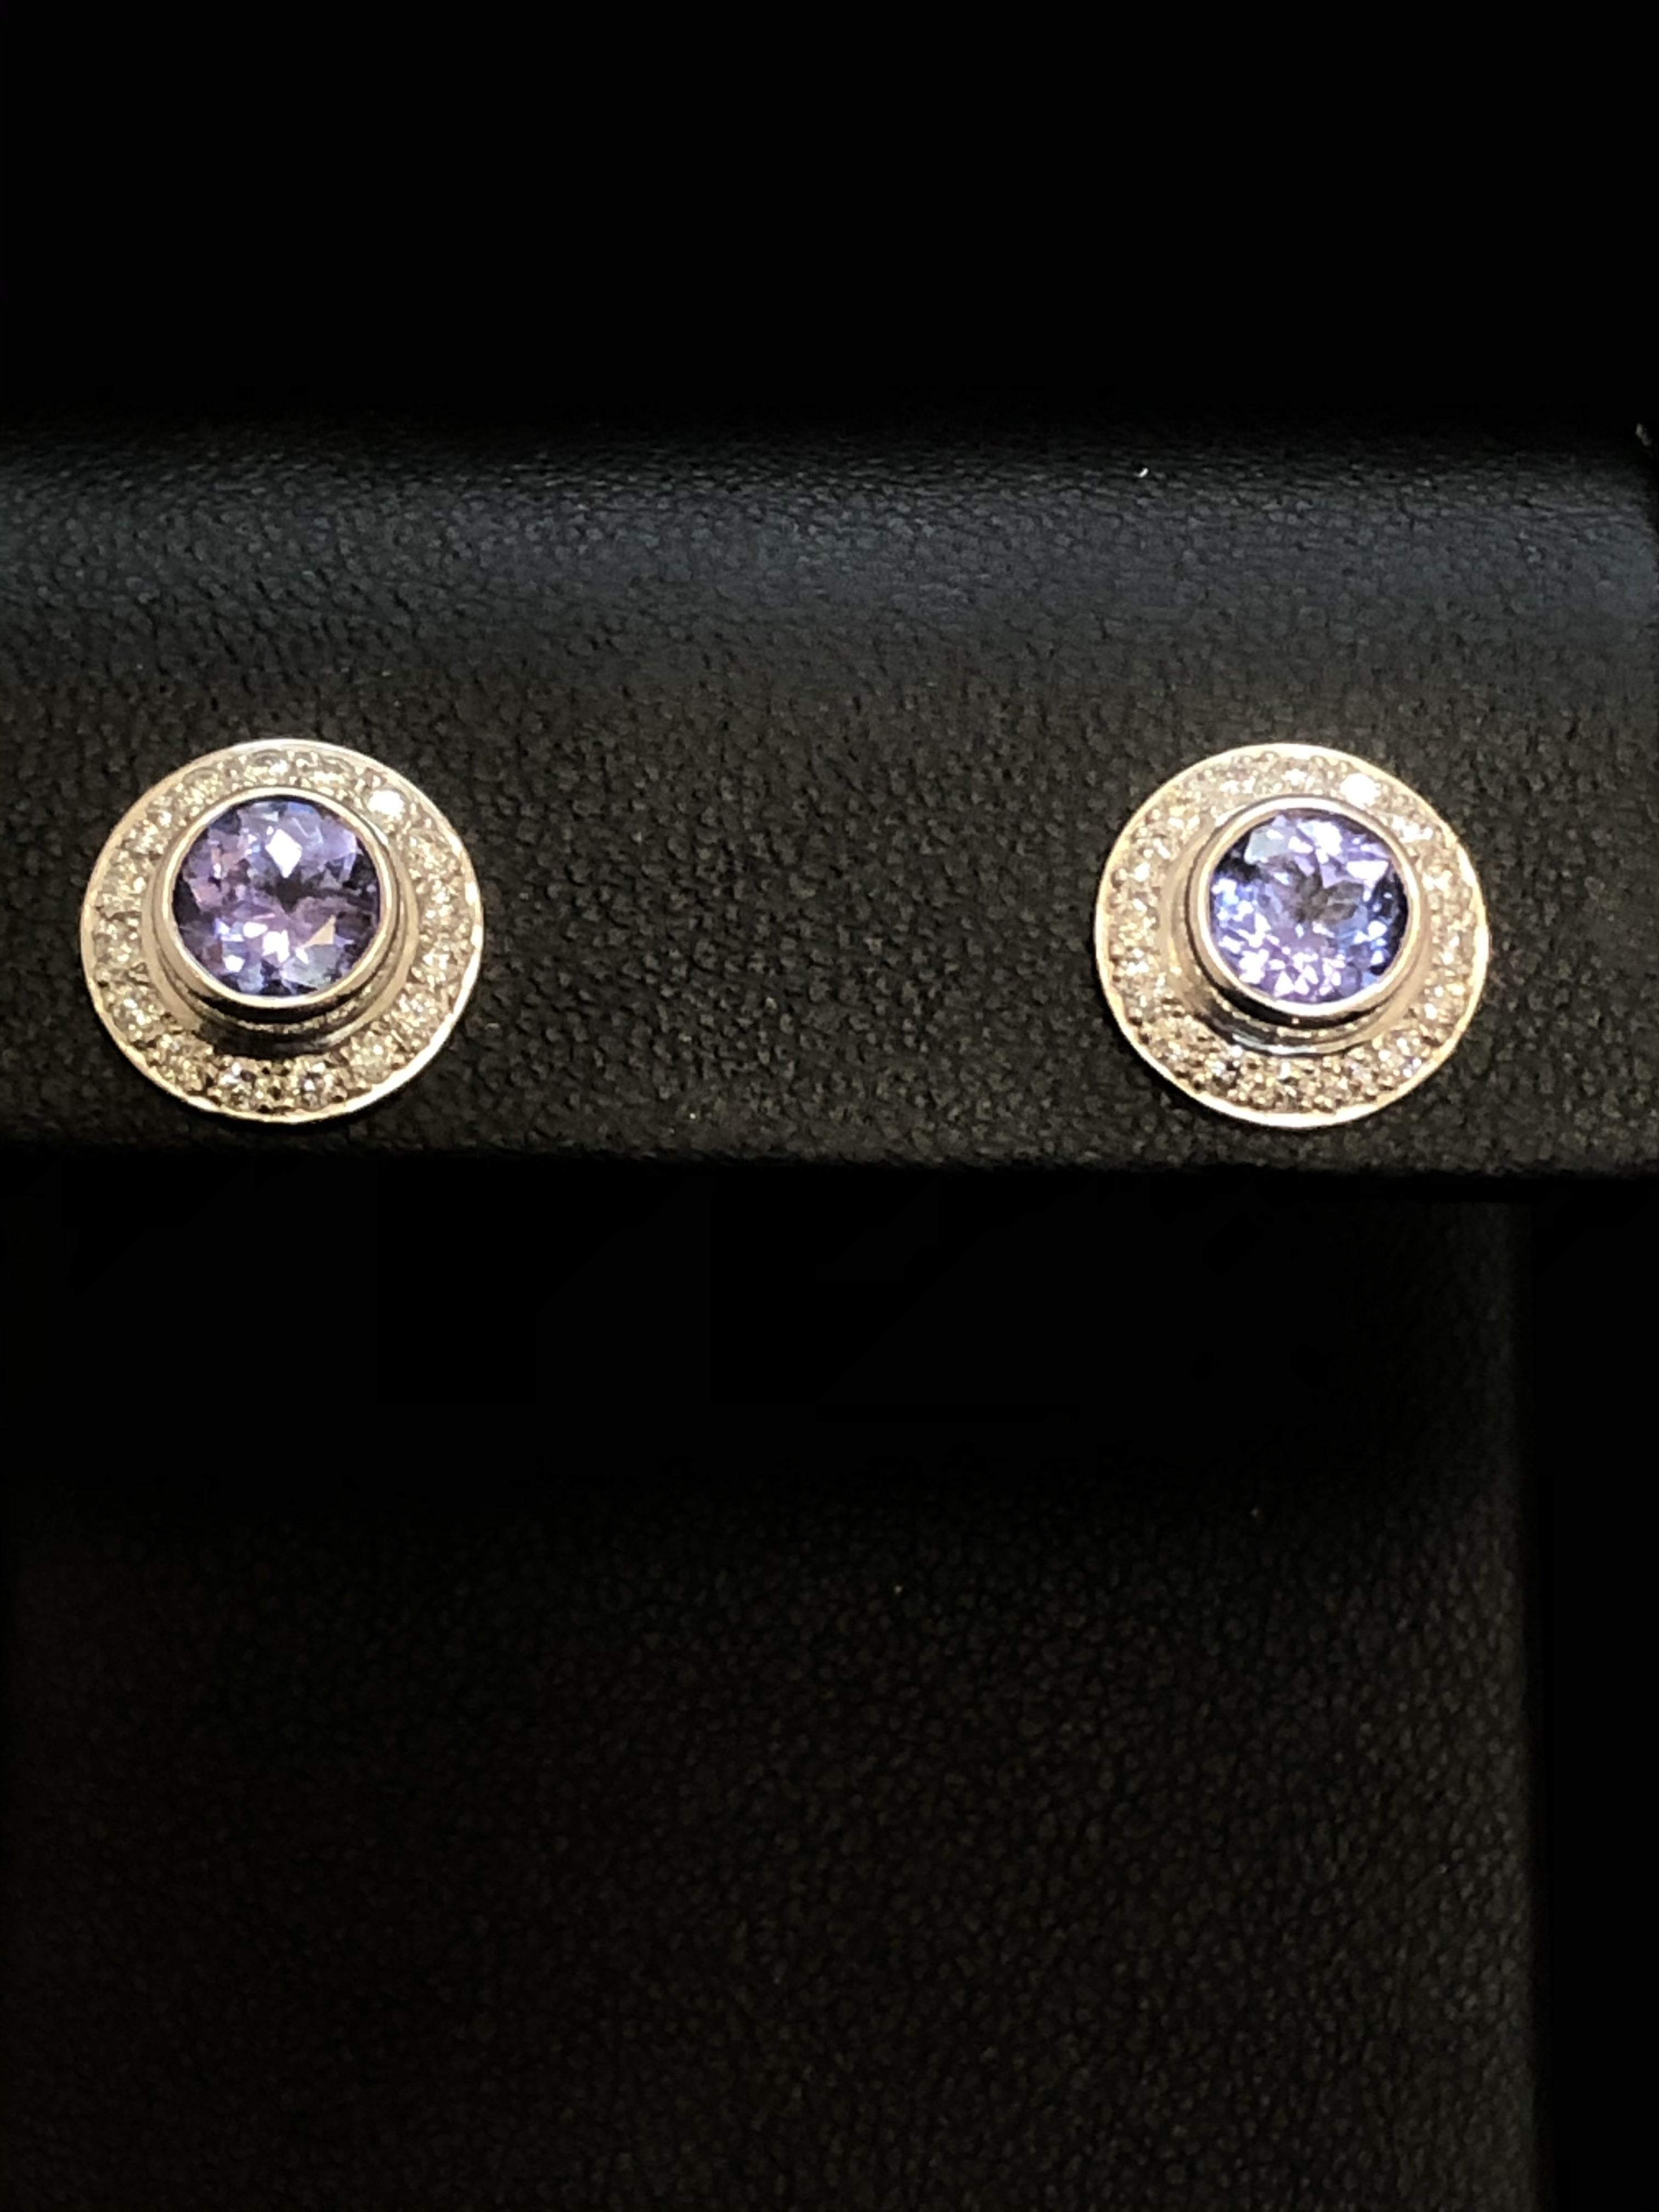 Close up of a pair of round earrings with a central violet-blue tanzanite in each, surrounded by small diamonds, set in 18ct white gold